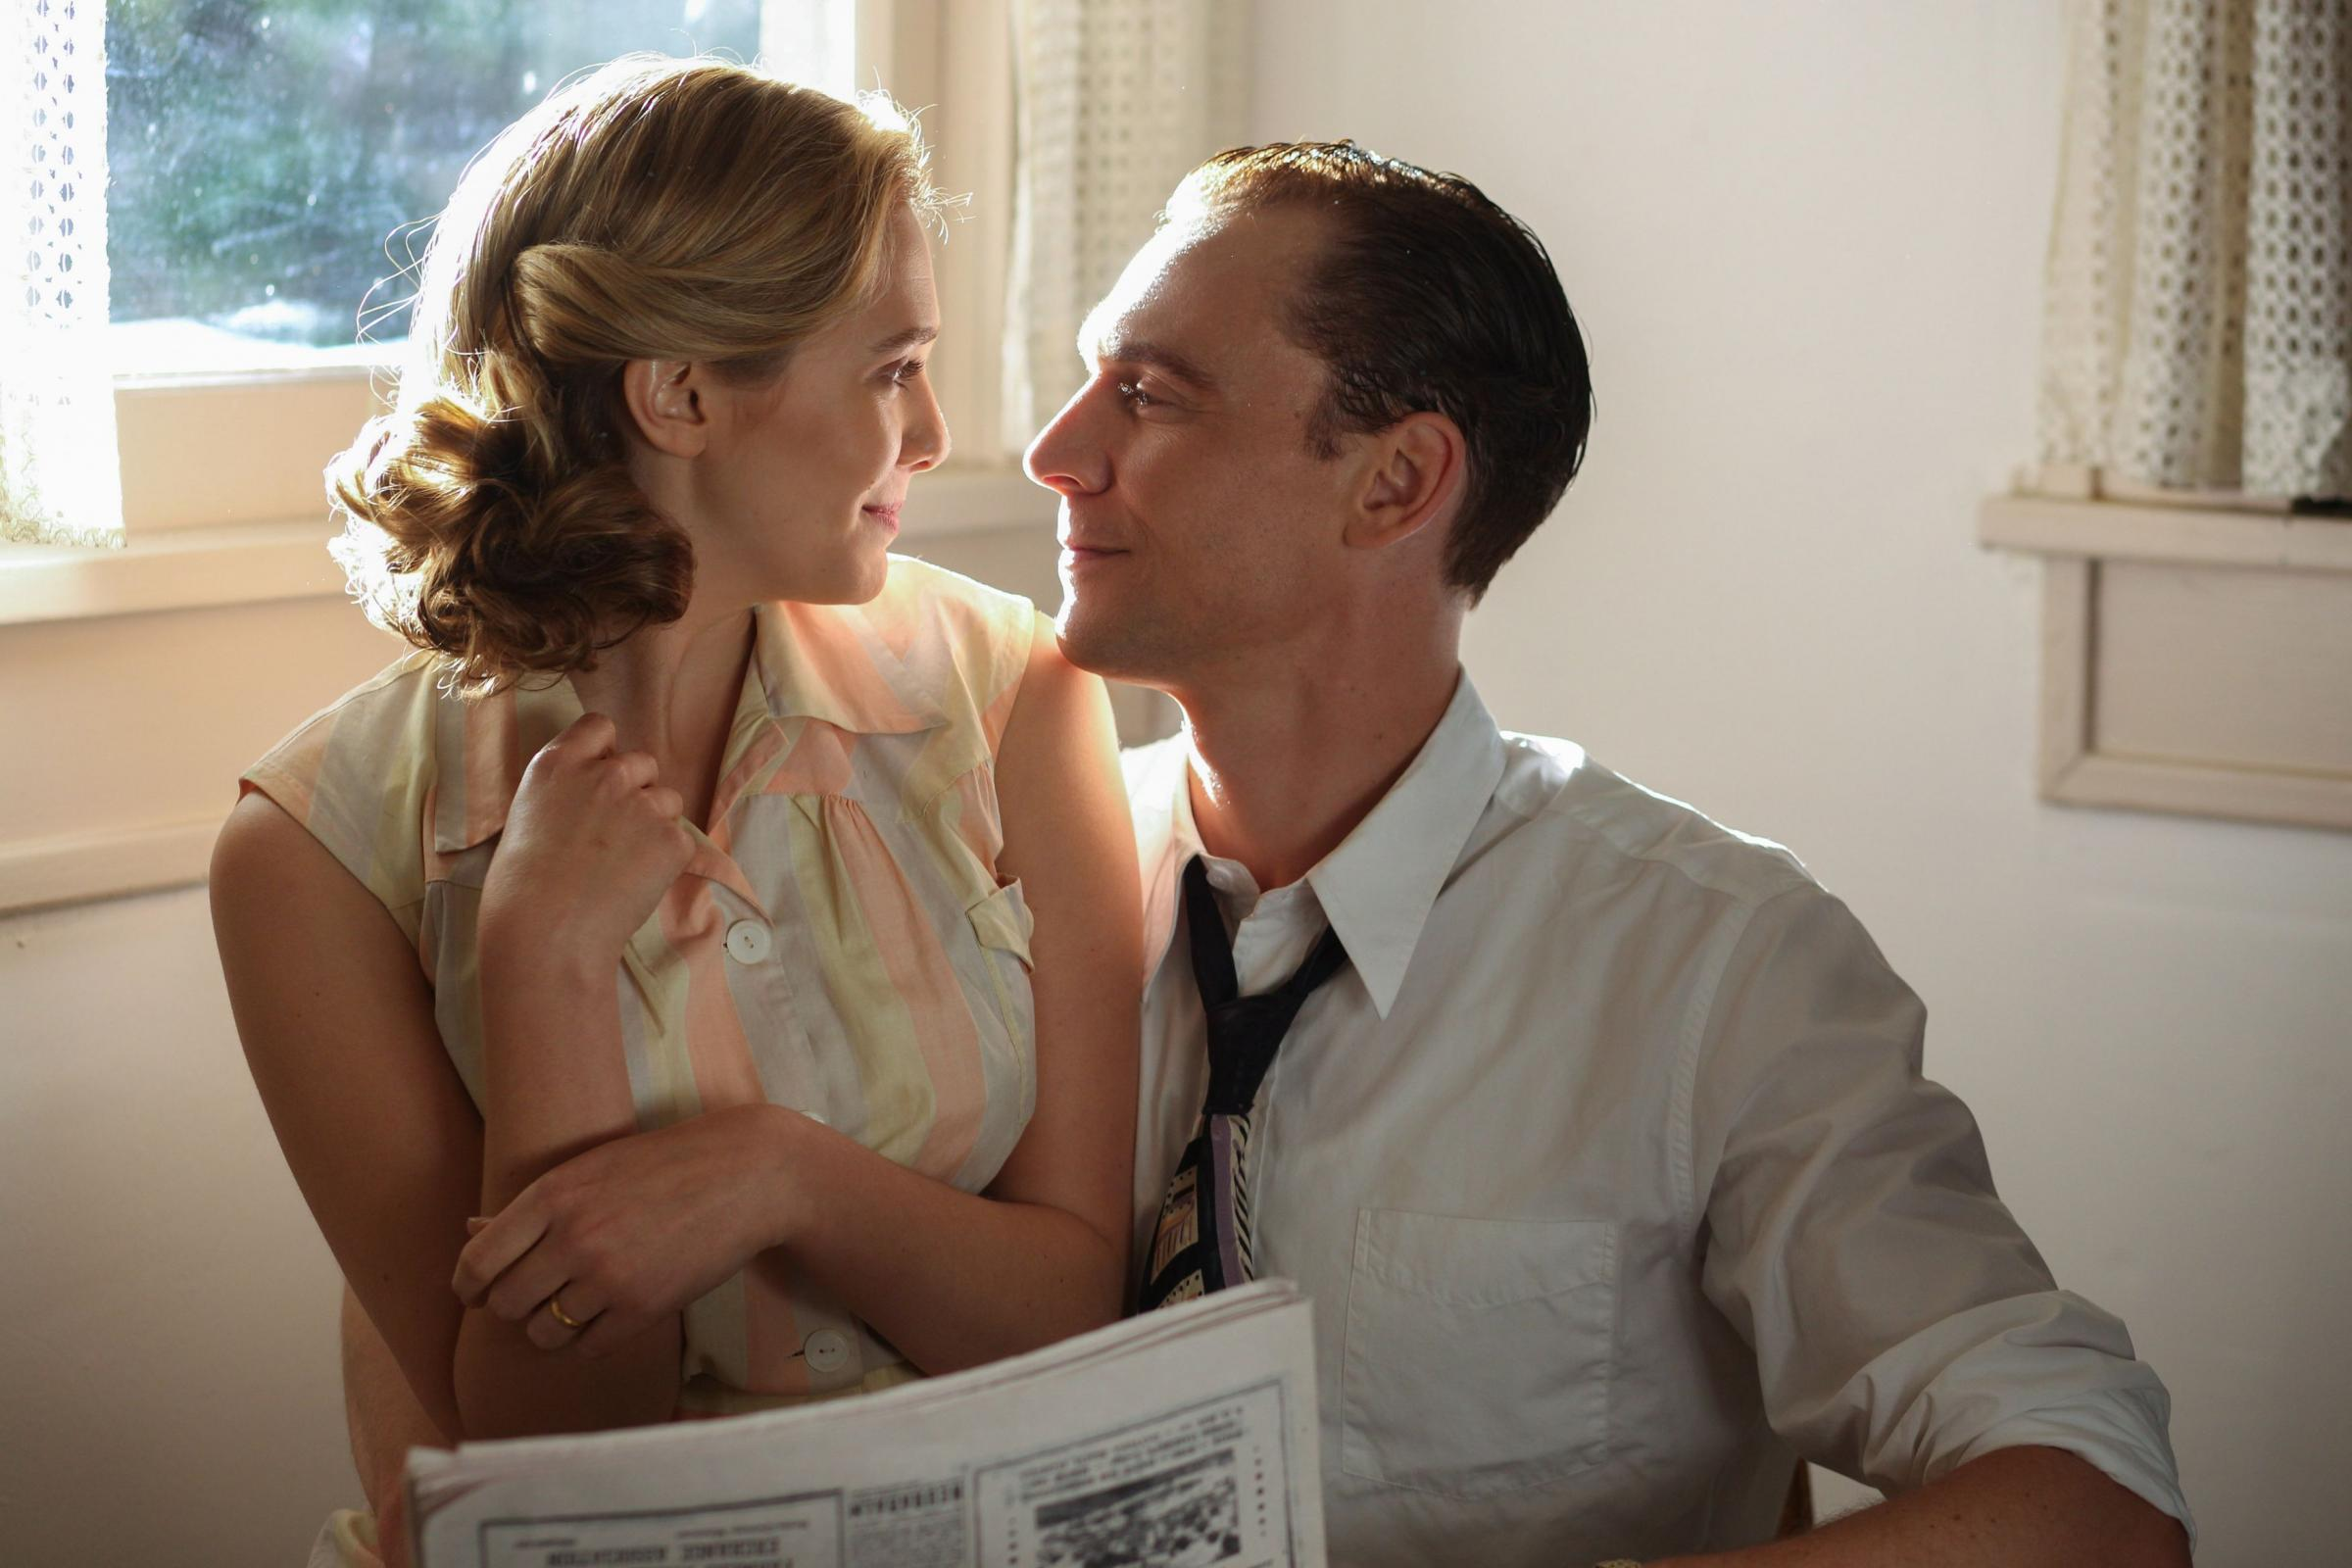 FIRST LOVE: Elizabeth Olsen as Audrey Williams and Tom Hiddleston as Hank Williams